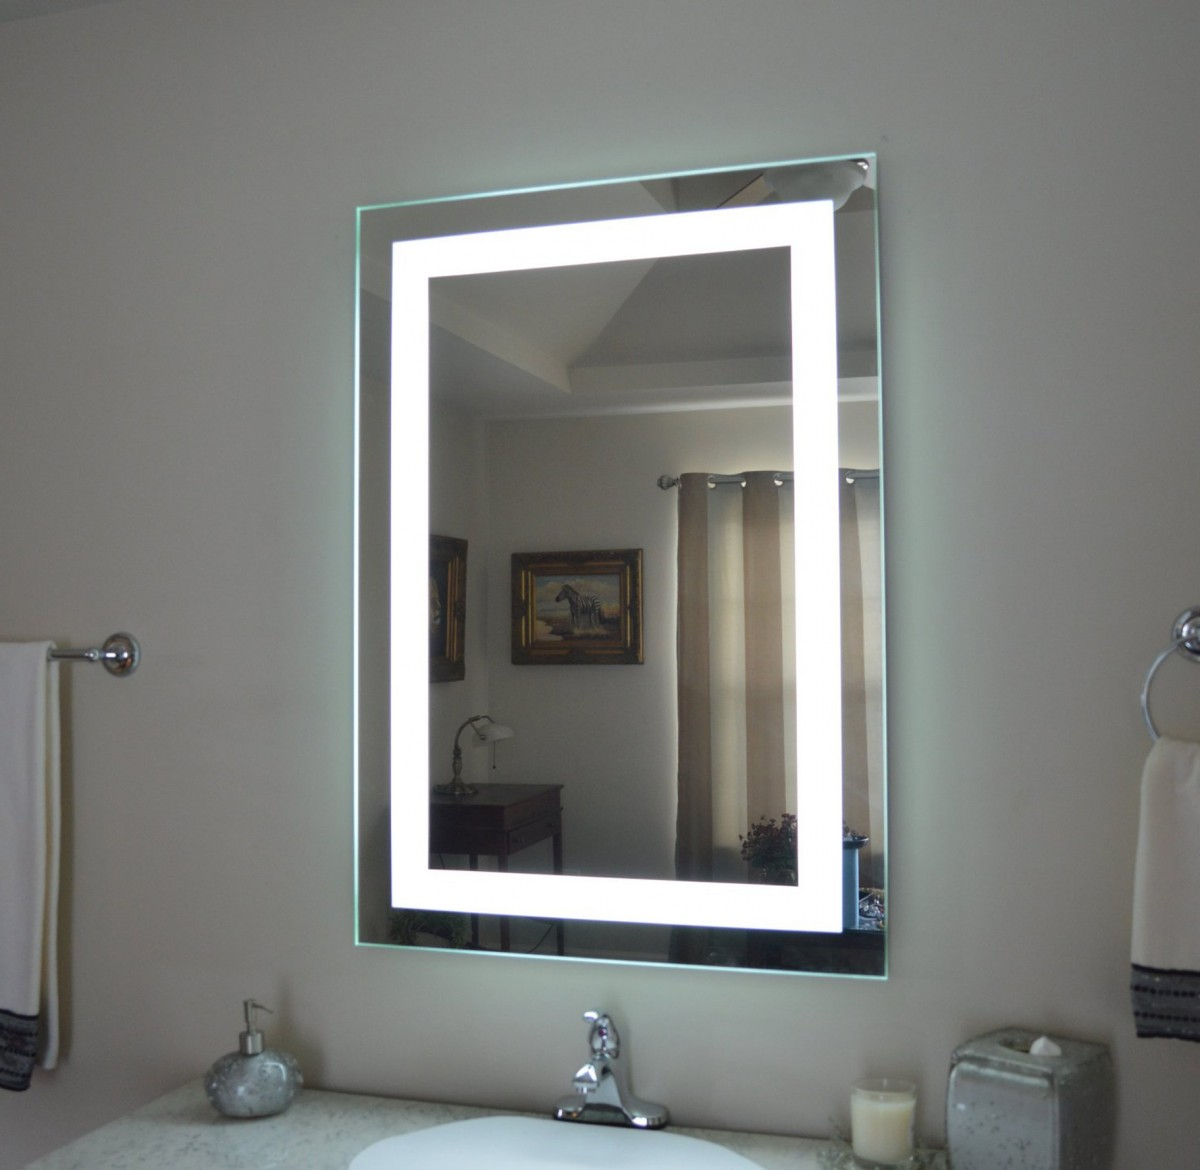 Mirrored bathroom furniture – two in one